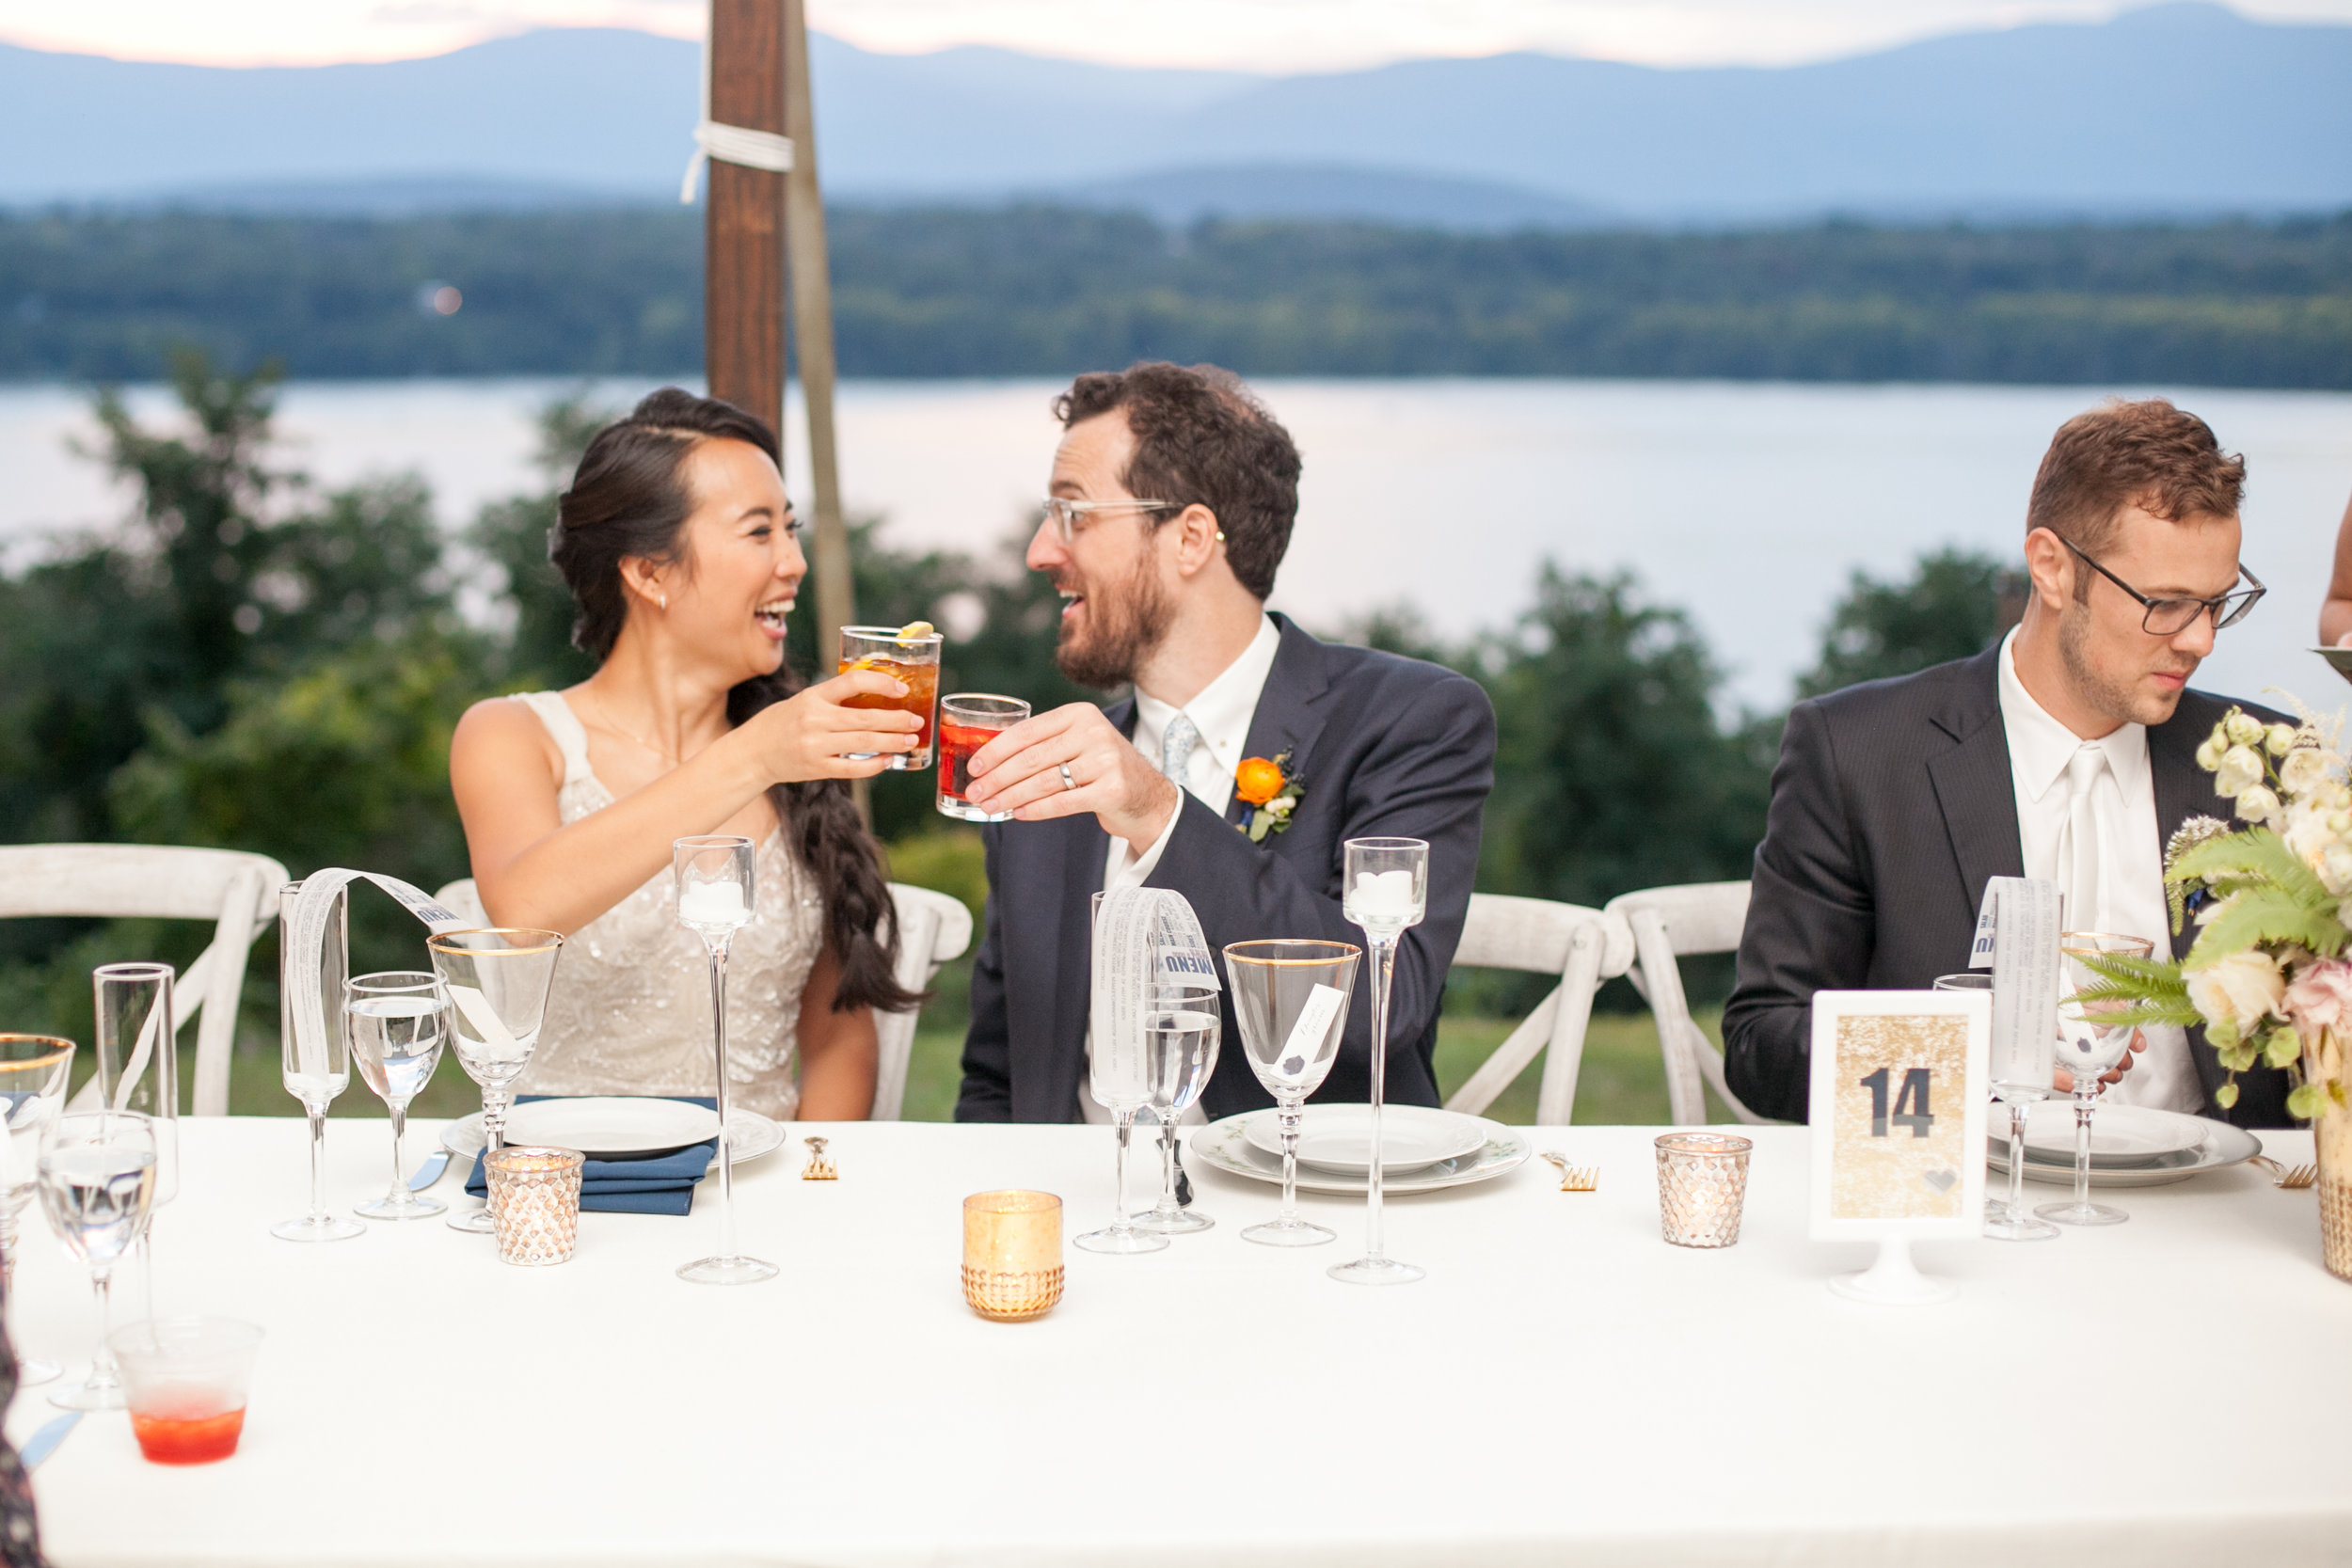 Catalyst wedding co. - Common Mistakes with Summer Weddings